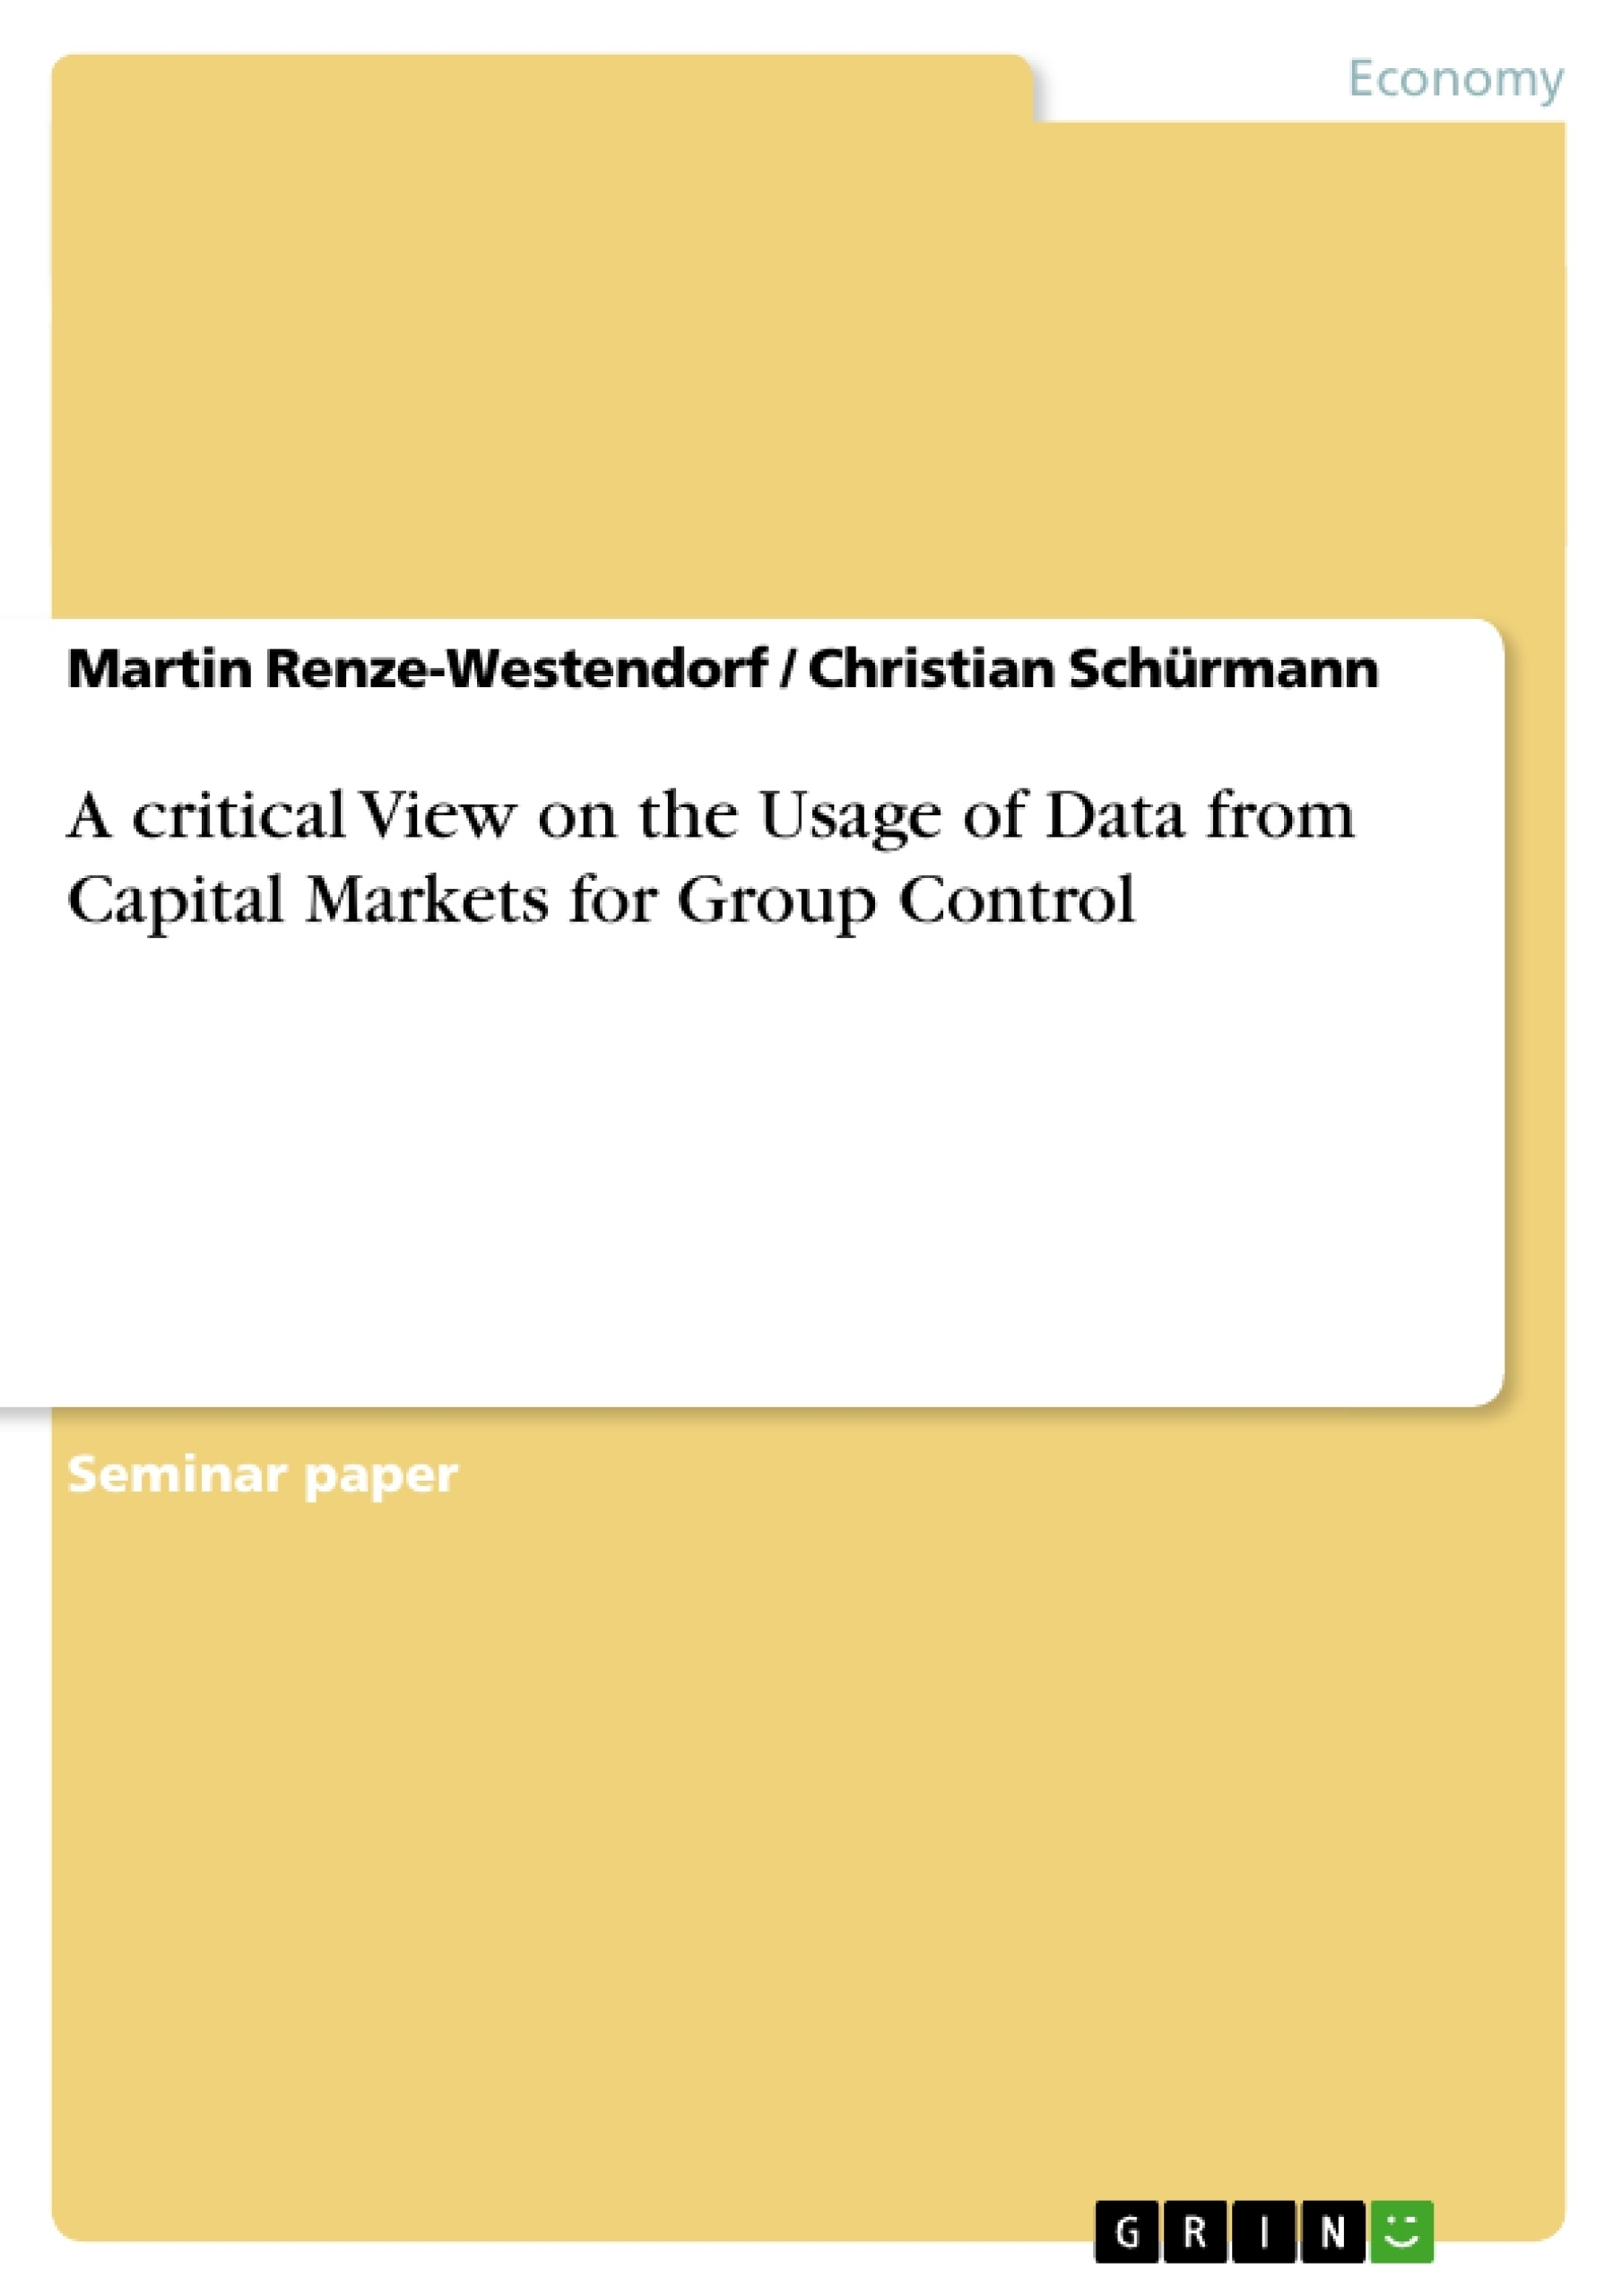 Title: A critical View on the Usage of Data from Capital Markets for Group Control